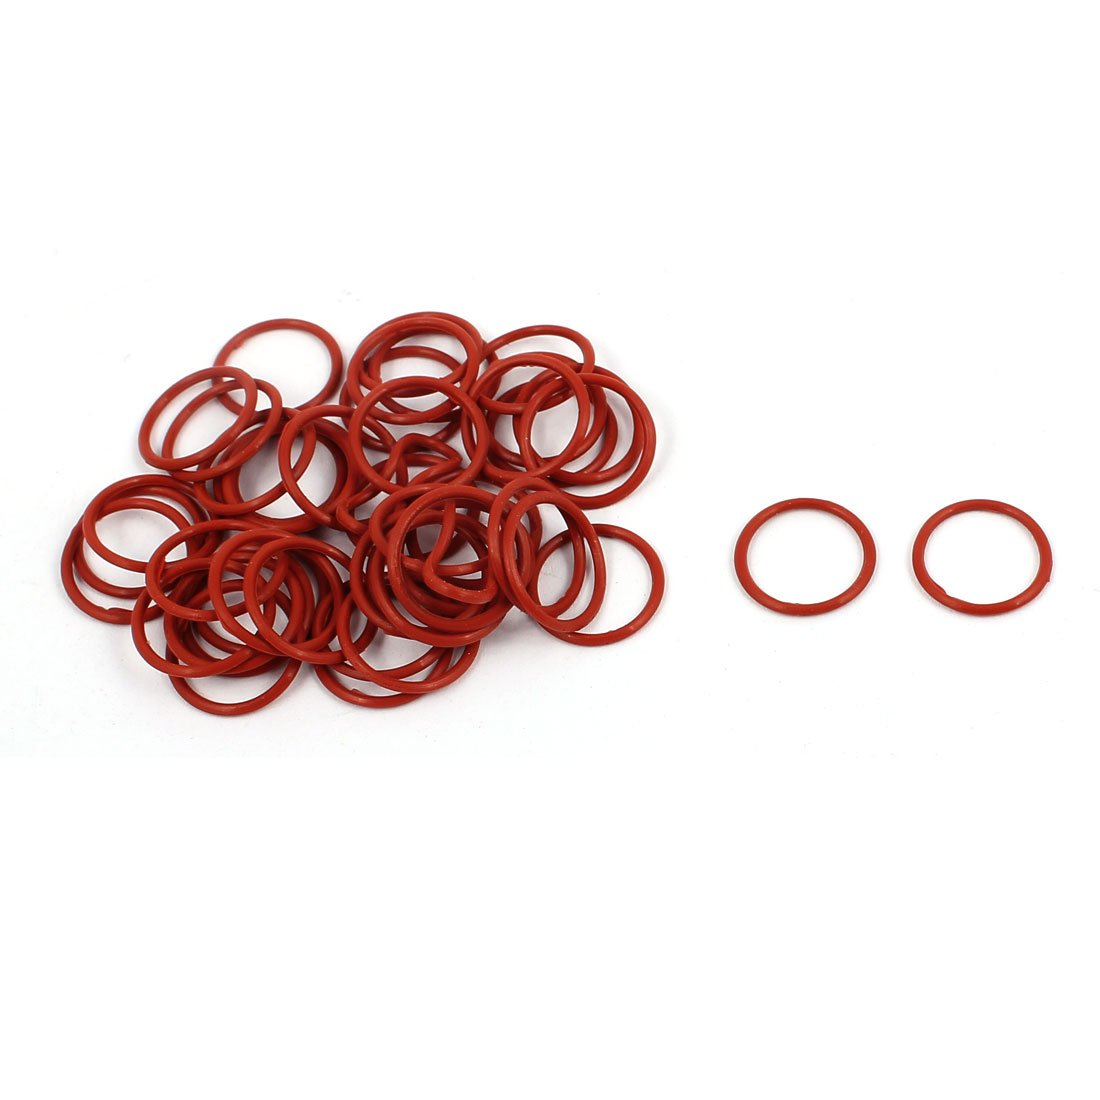 uxcell 20Pcs 14mm x 1mm Rubber O-rings NBR Heat Resistant Sealing Ring Grommets Red